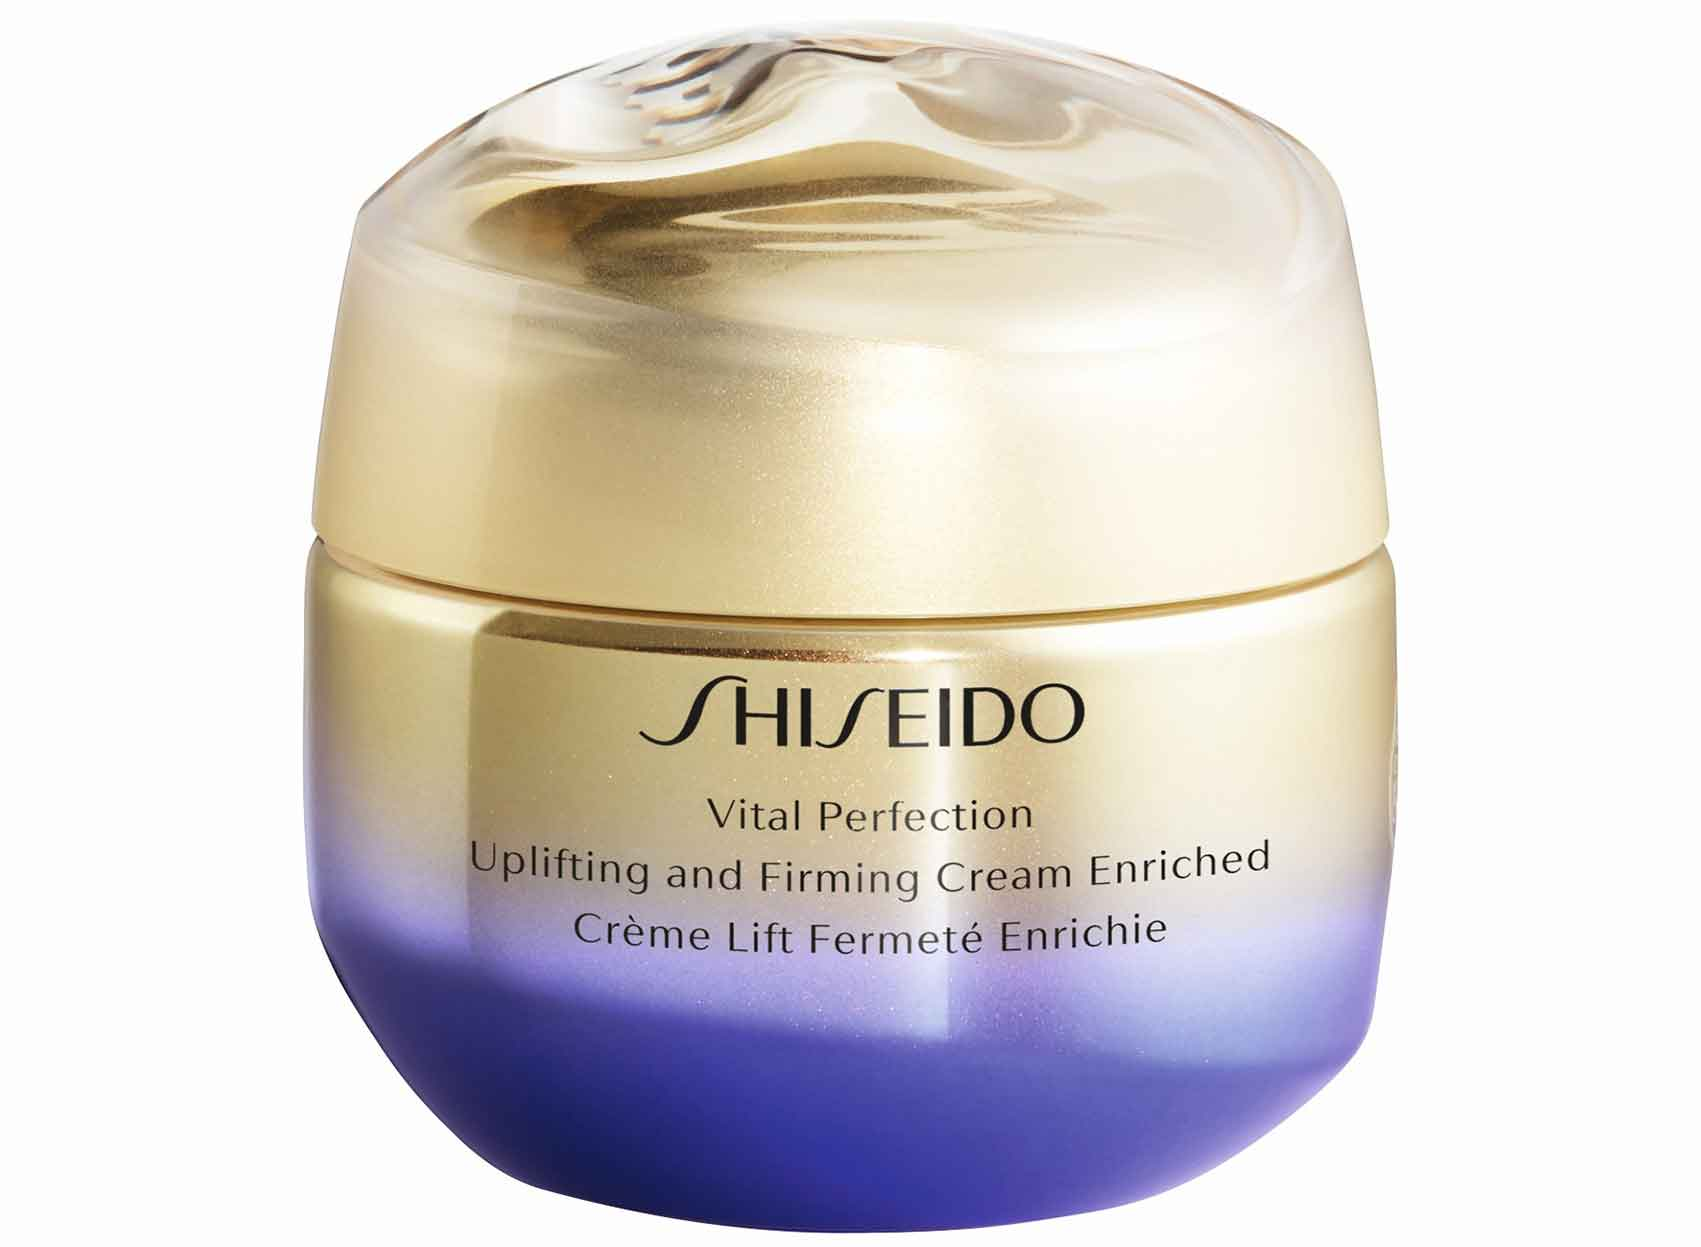 Shiseido-Vital-Perfection-Uplifting-and-Firming-Cream-Enriched-ביוטי